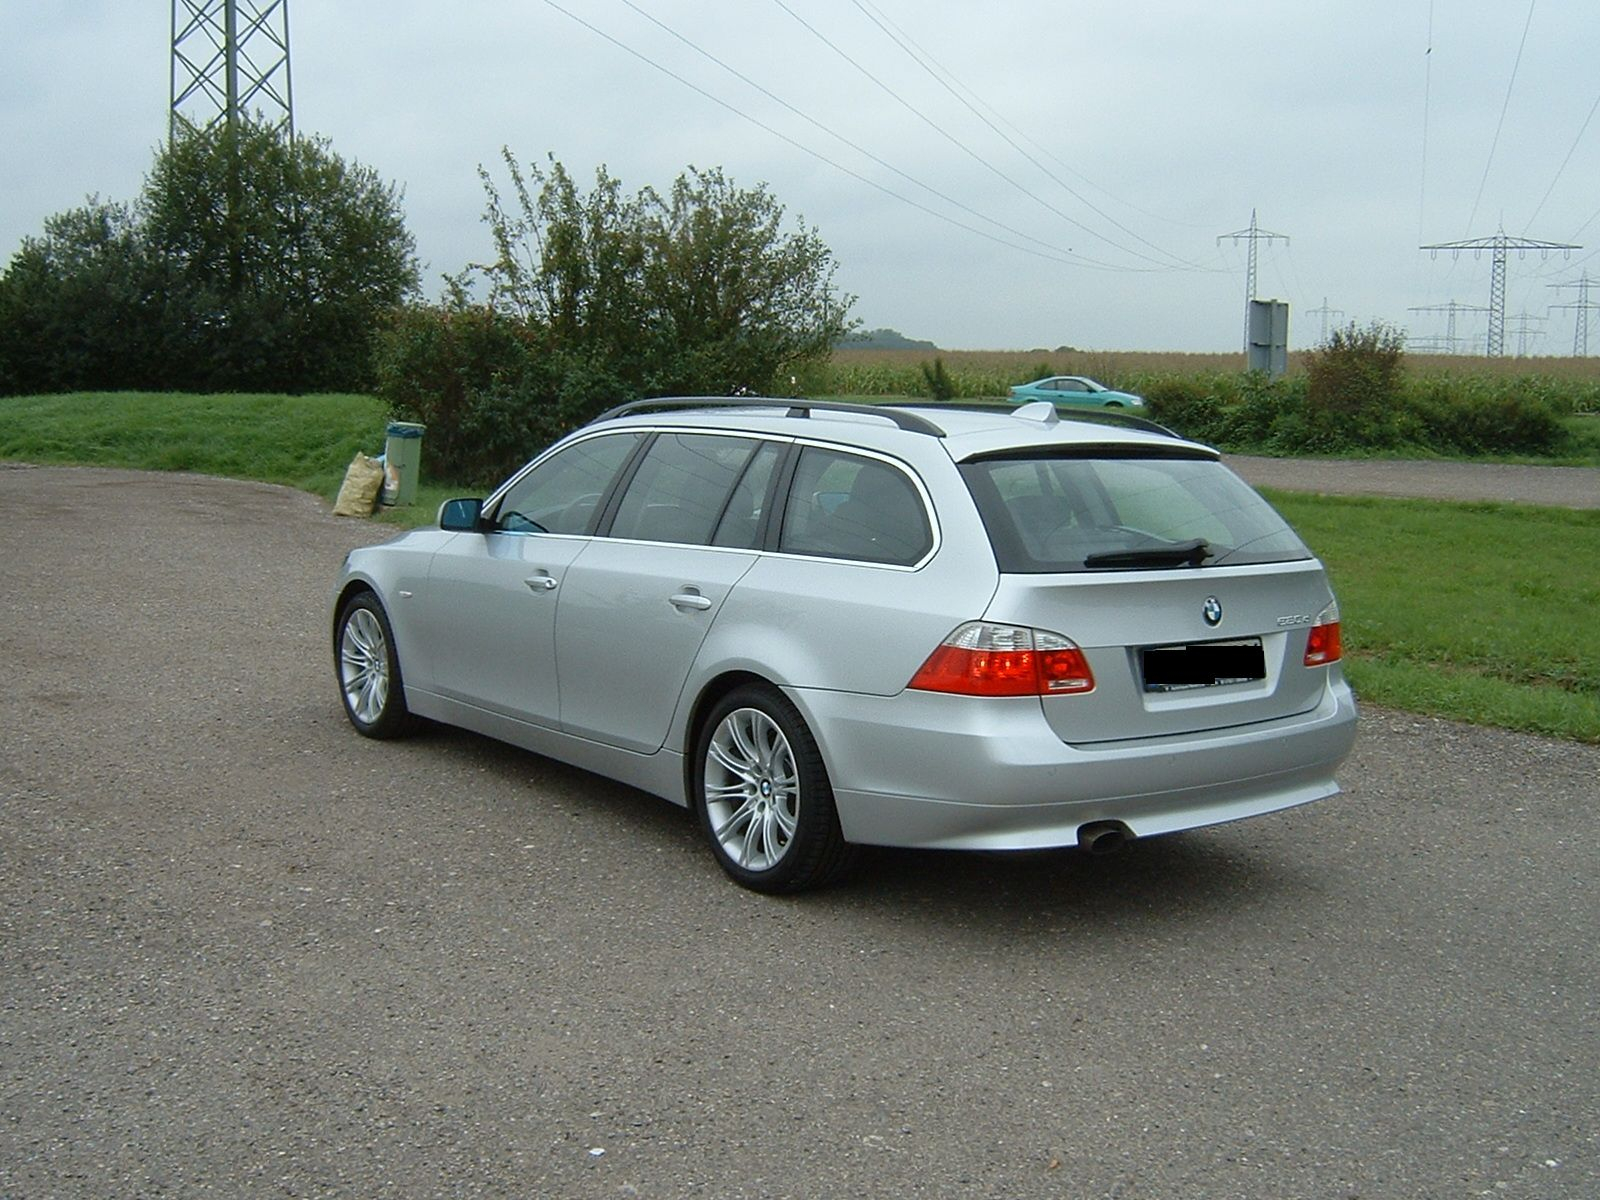 bmw 5 series e60 gallery and specs bimmerin. Black Bedroom Furniture Sets. Home Design Ideas